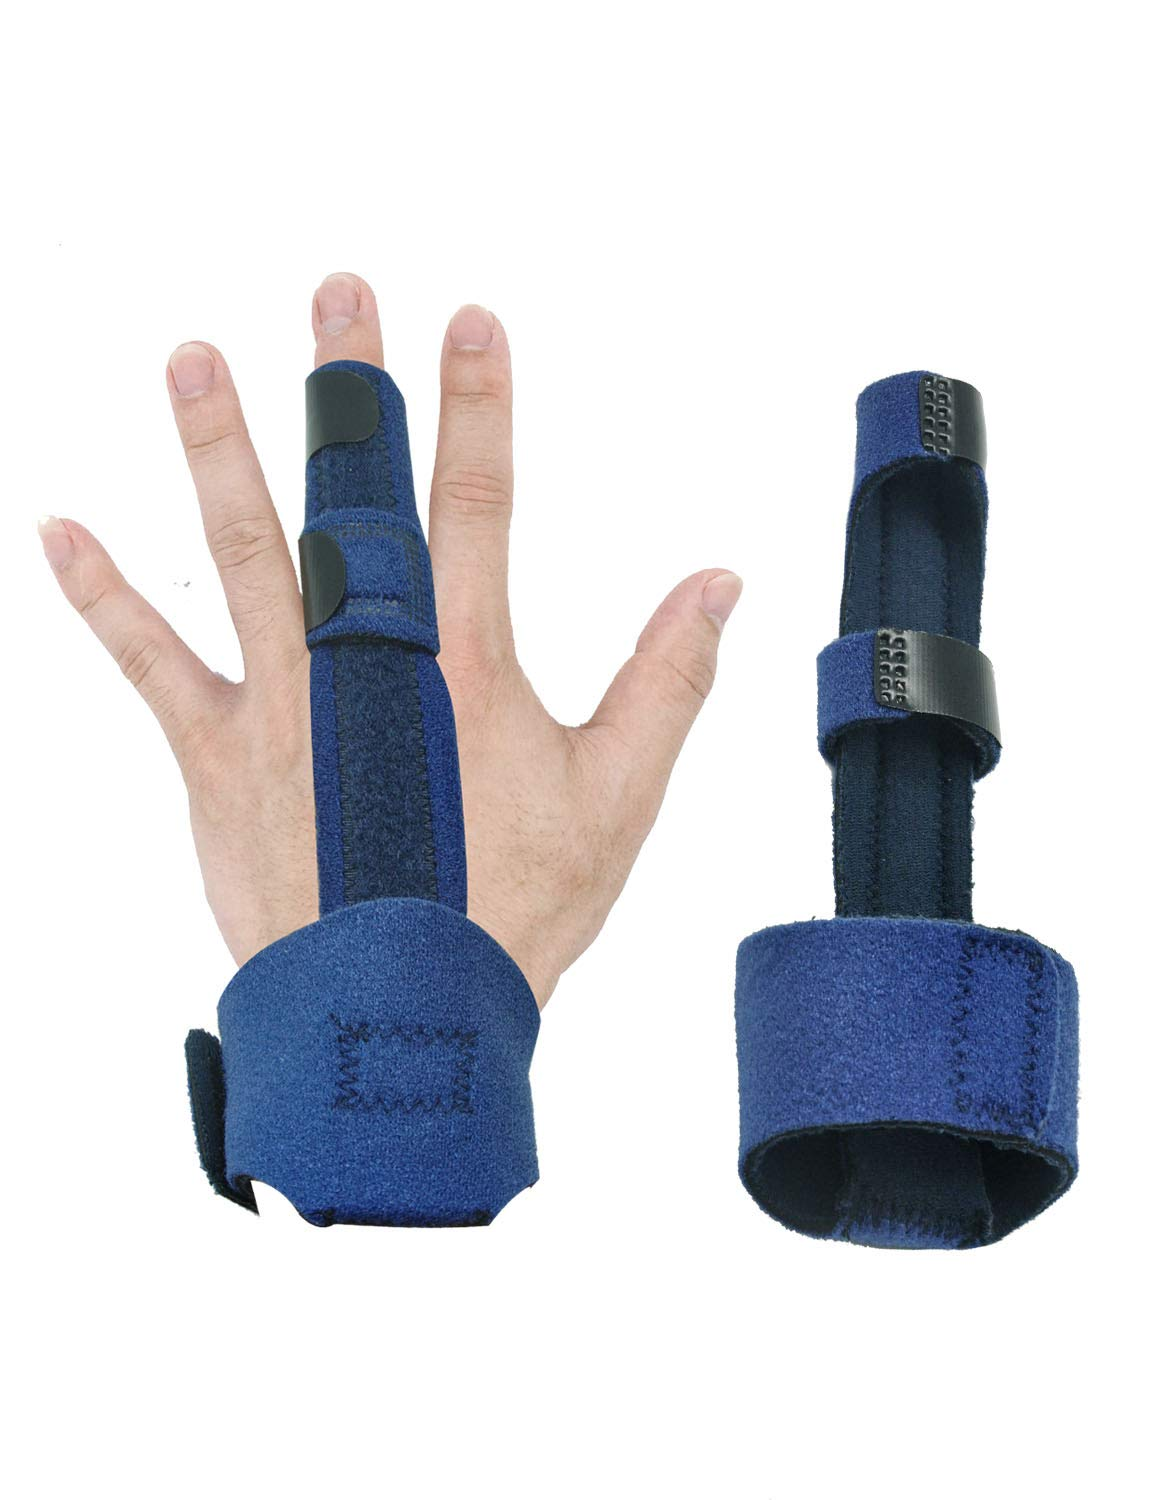 Finger Extension Splint Medical Grade with Aluminum Isolated Support Fits All Fingers for Trigger Finger, Sprains, Broken Fingers, Injuries, Strains, Mallet Finger, Pain Relief